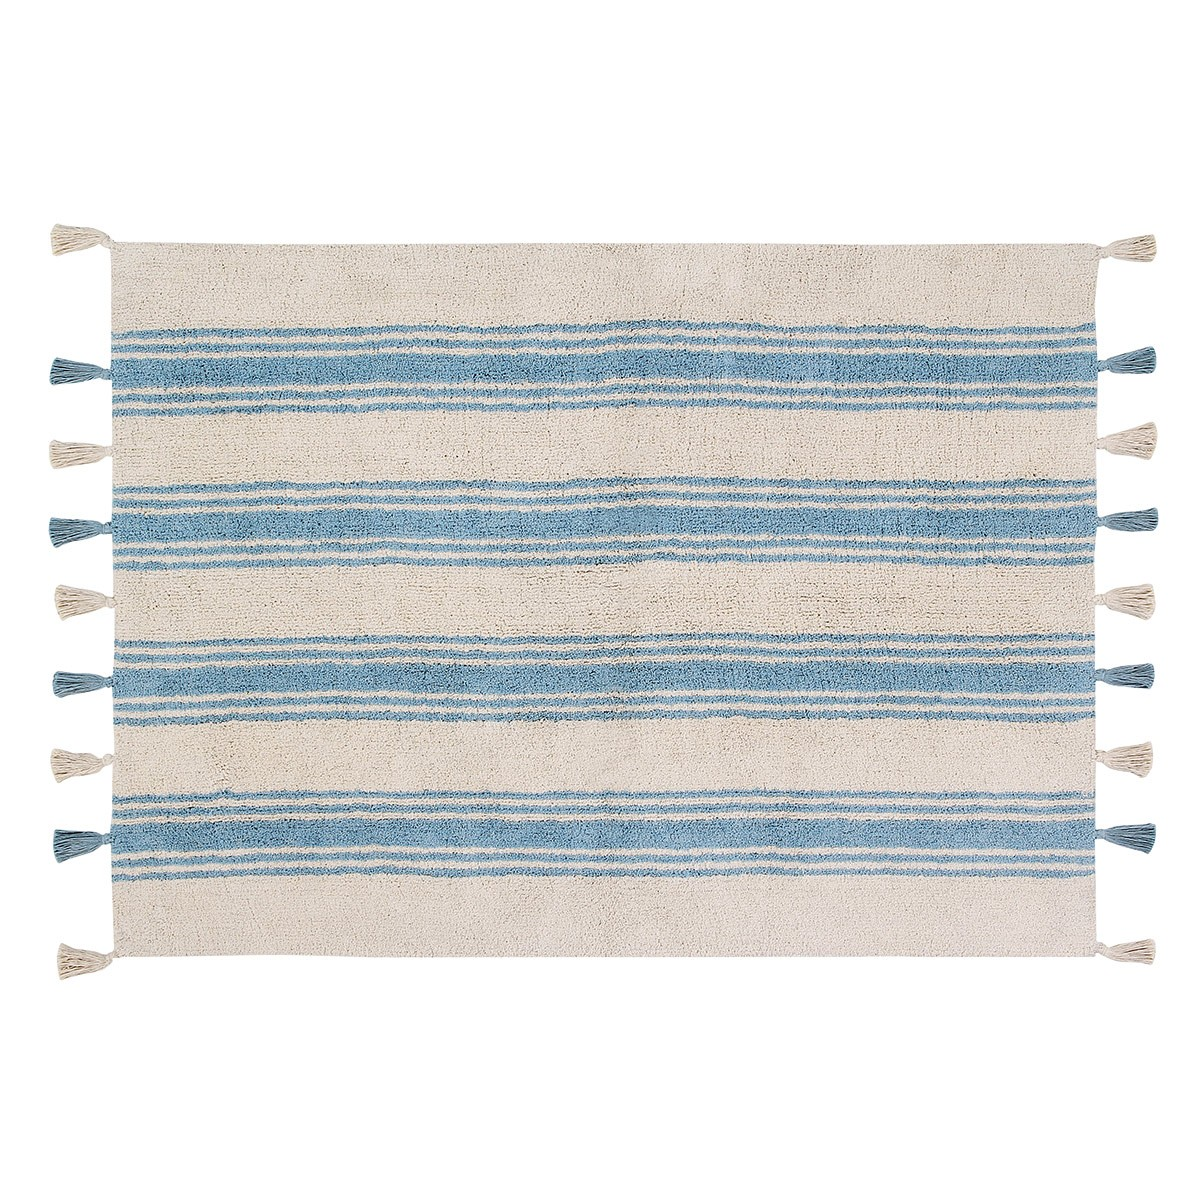 Πλενόμενο Χαλί (120x160) Lorena Canals Stripes Nile Blue